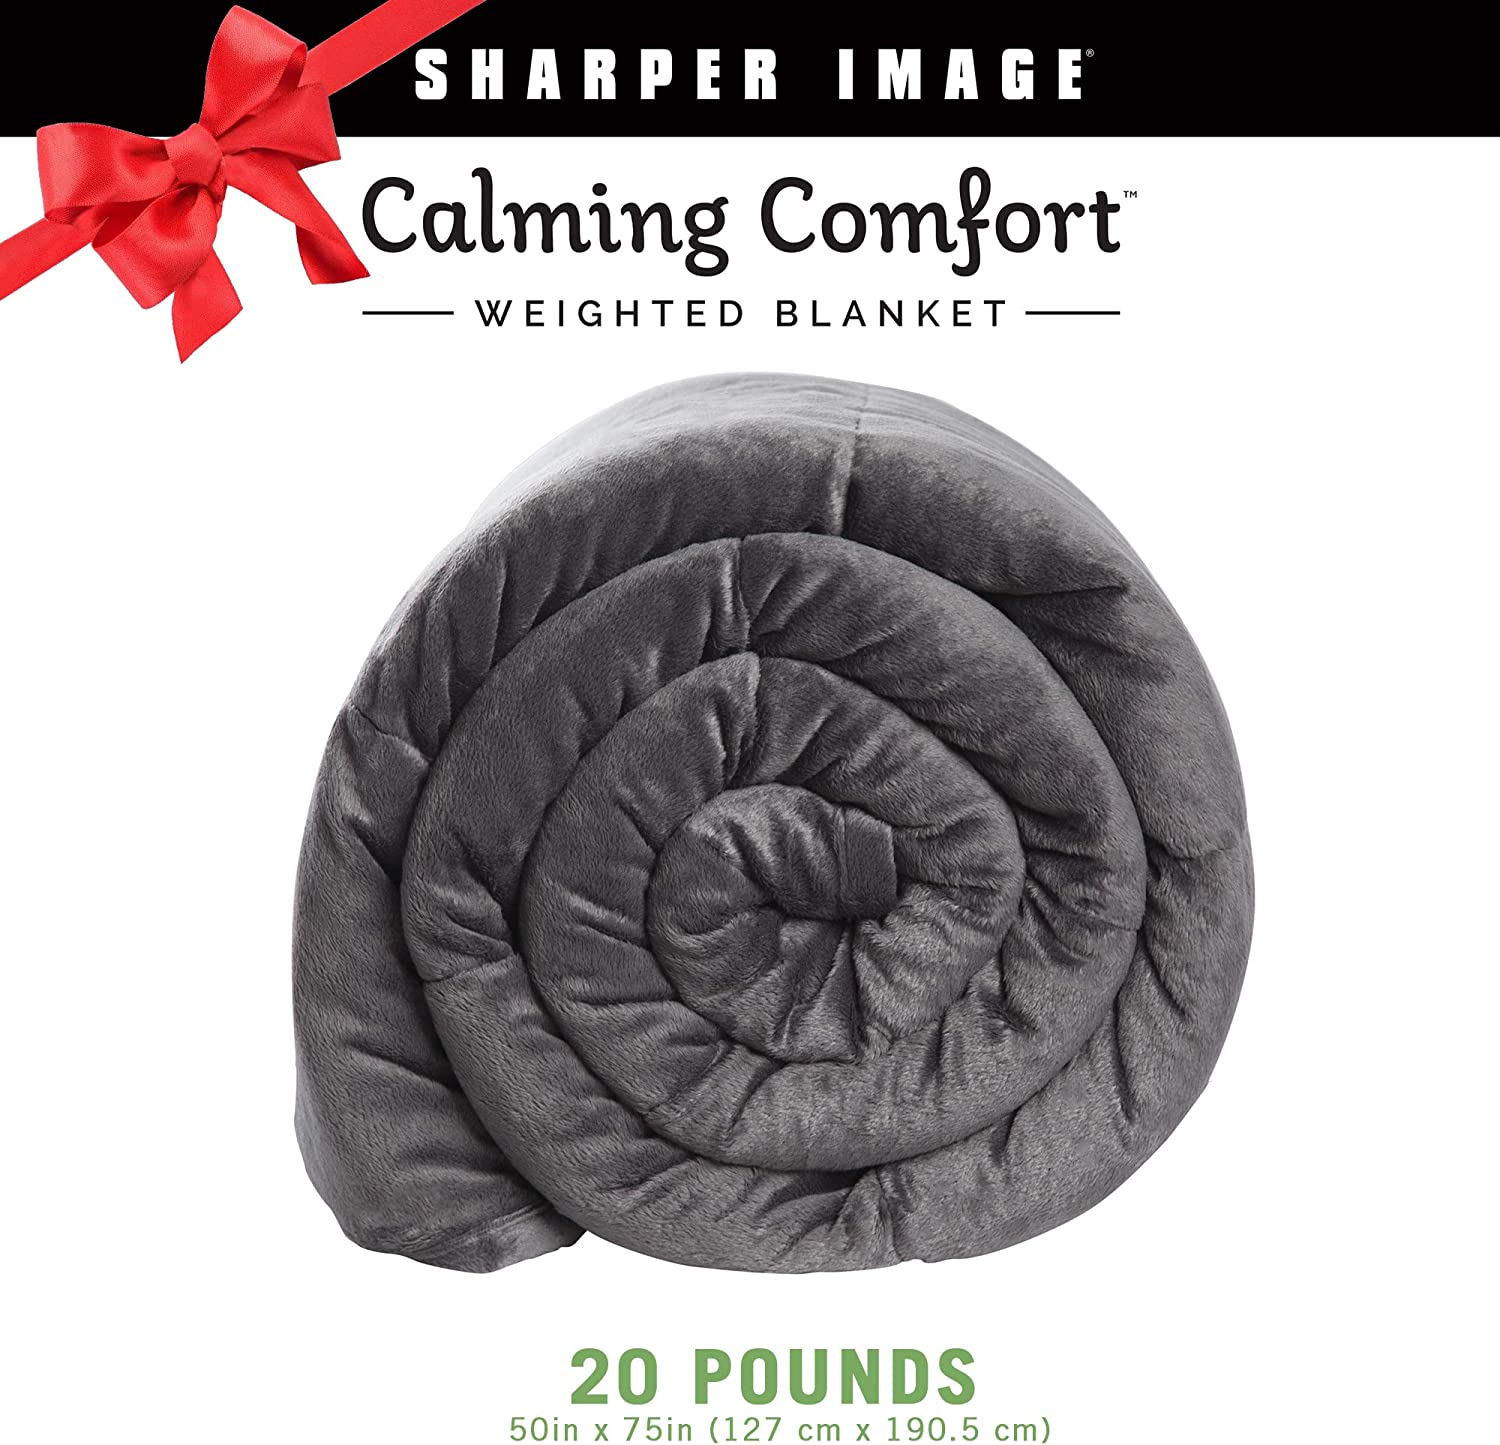 """Calming Comfort Weighted Blanket by Sharper Image- A Heavy Blanket